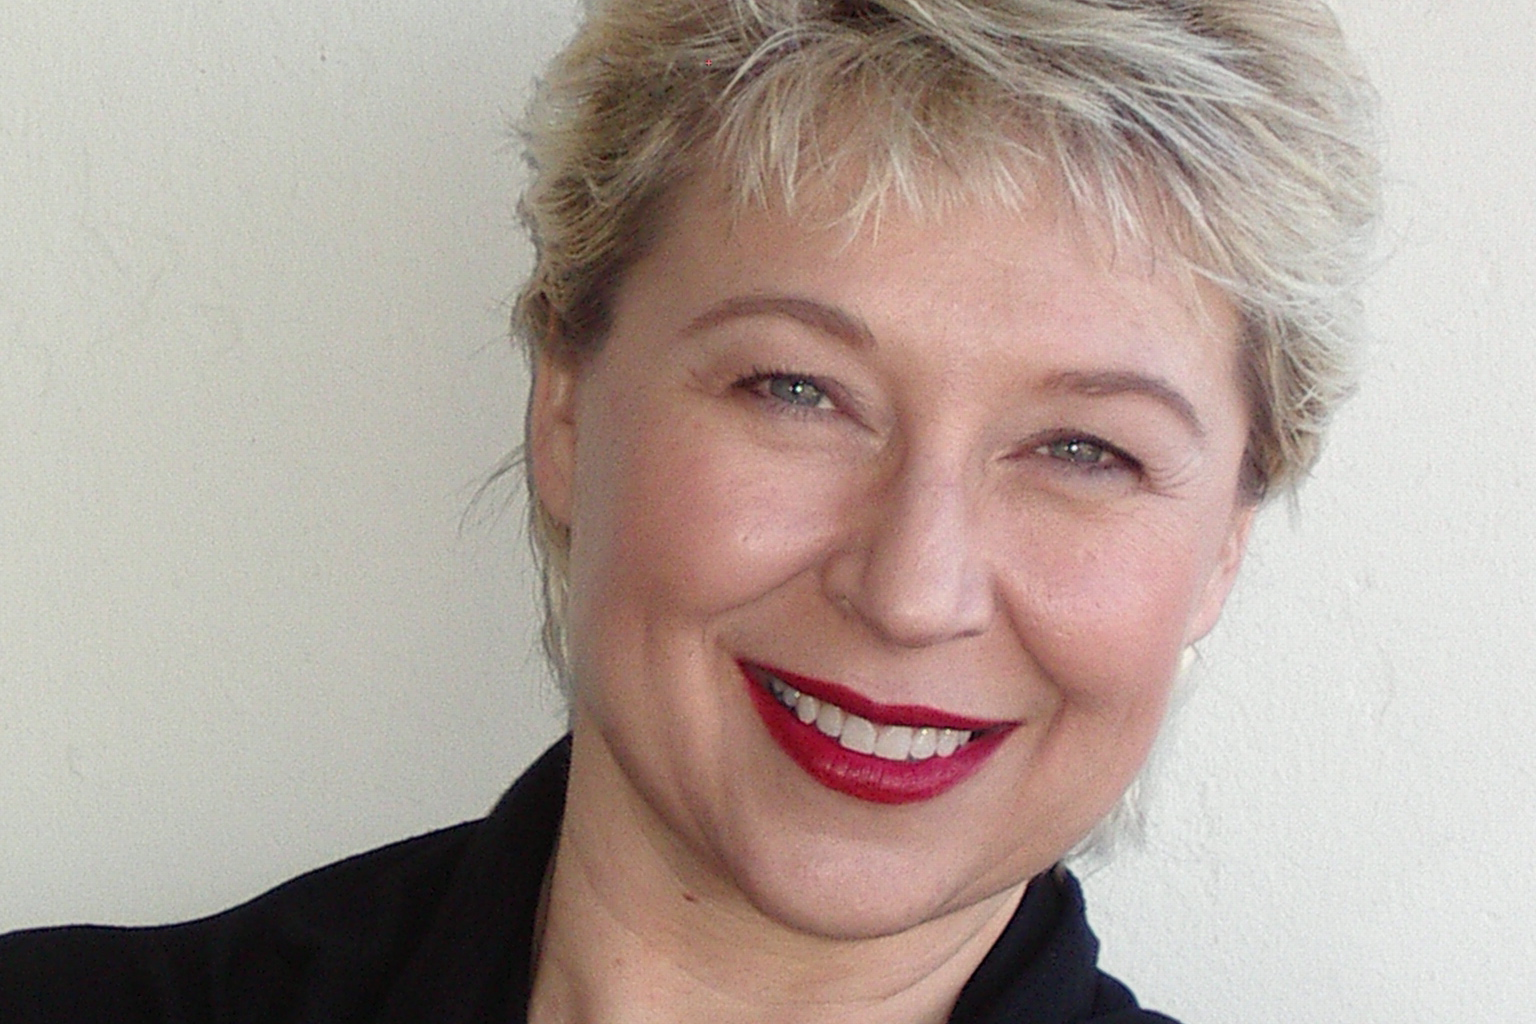 #Passiontoprofit #WIBN Conference Attendee Spotlight: @GwenGnazdowsky